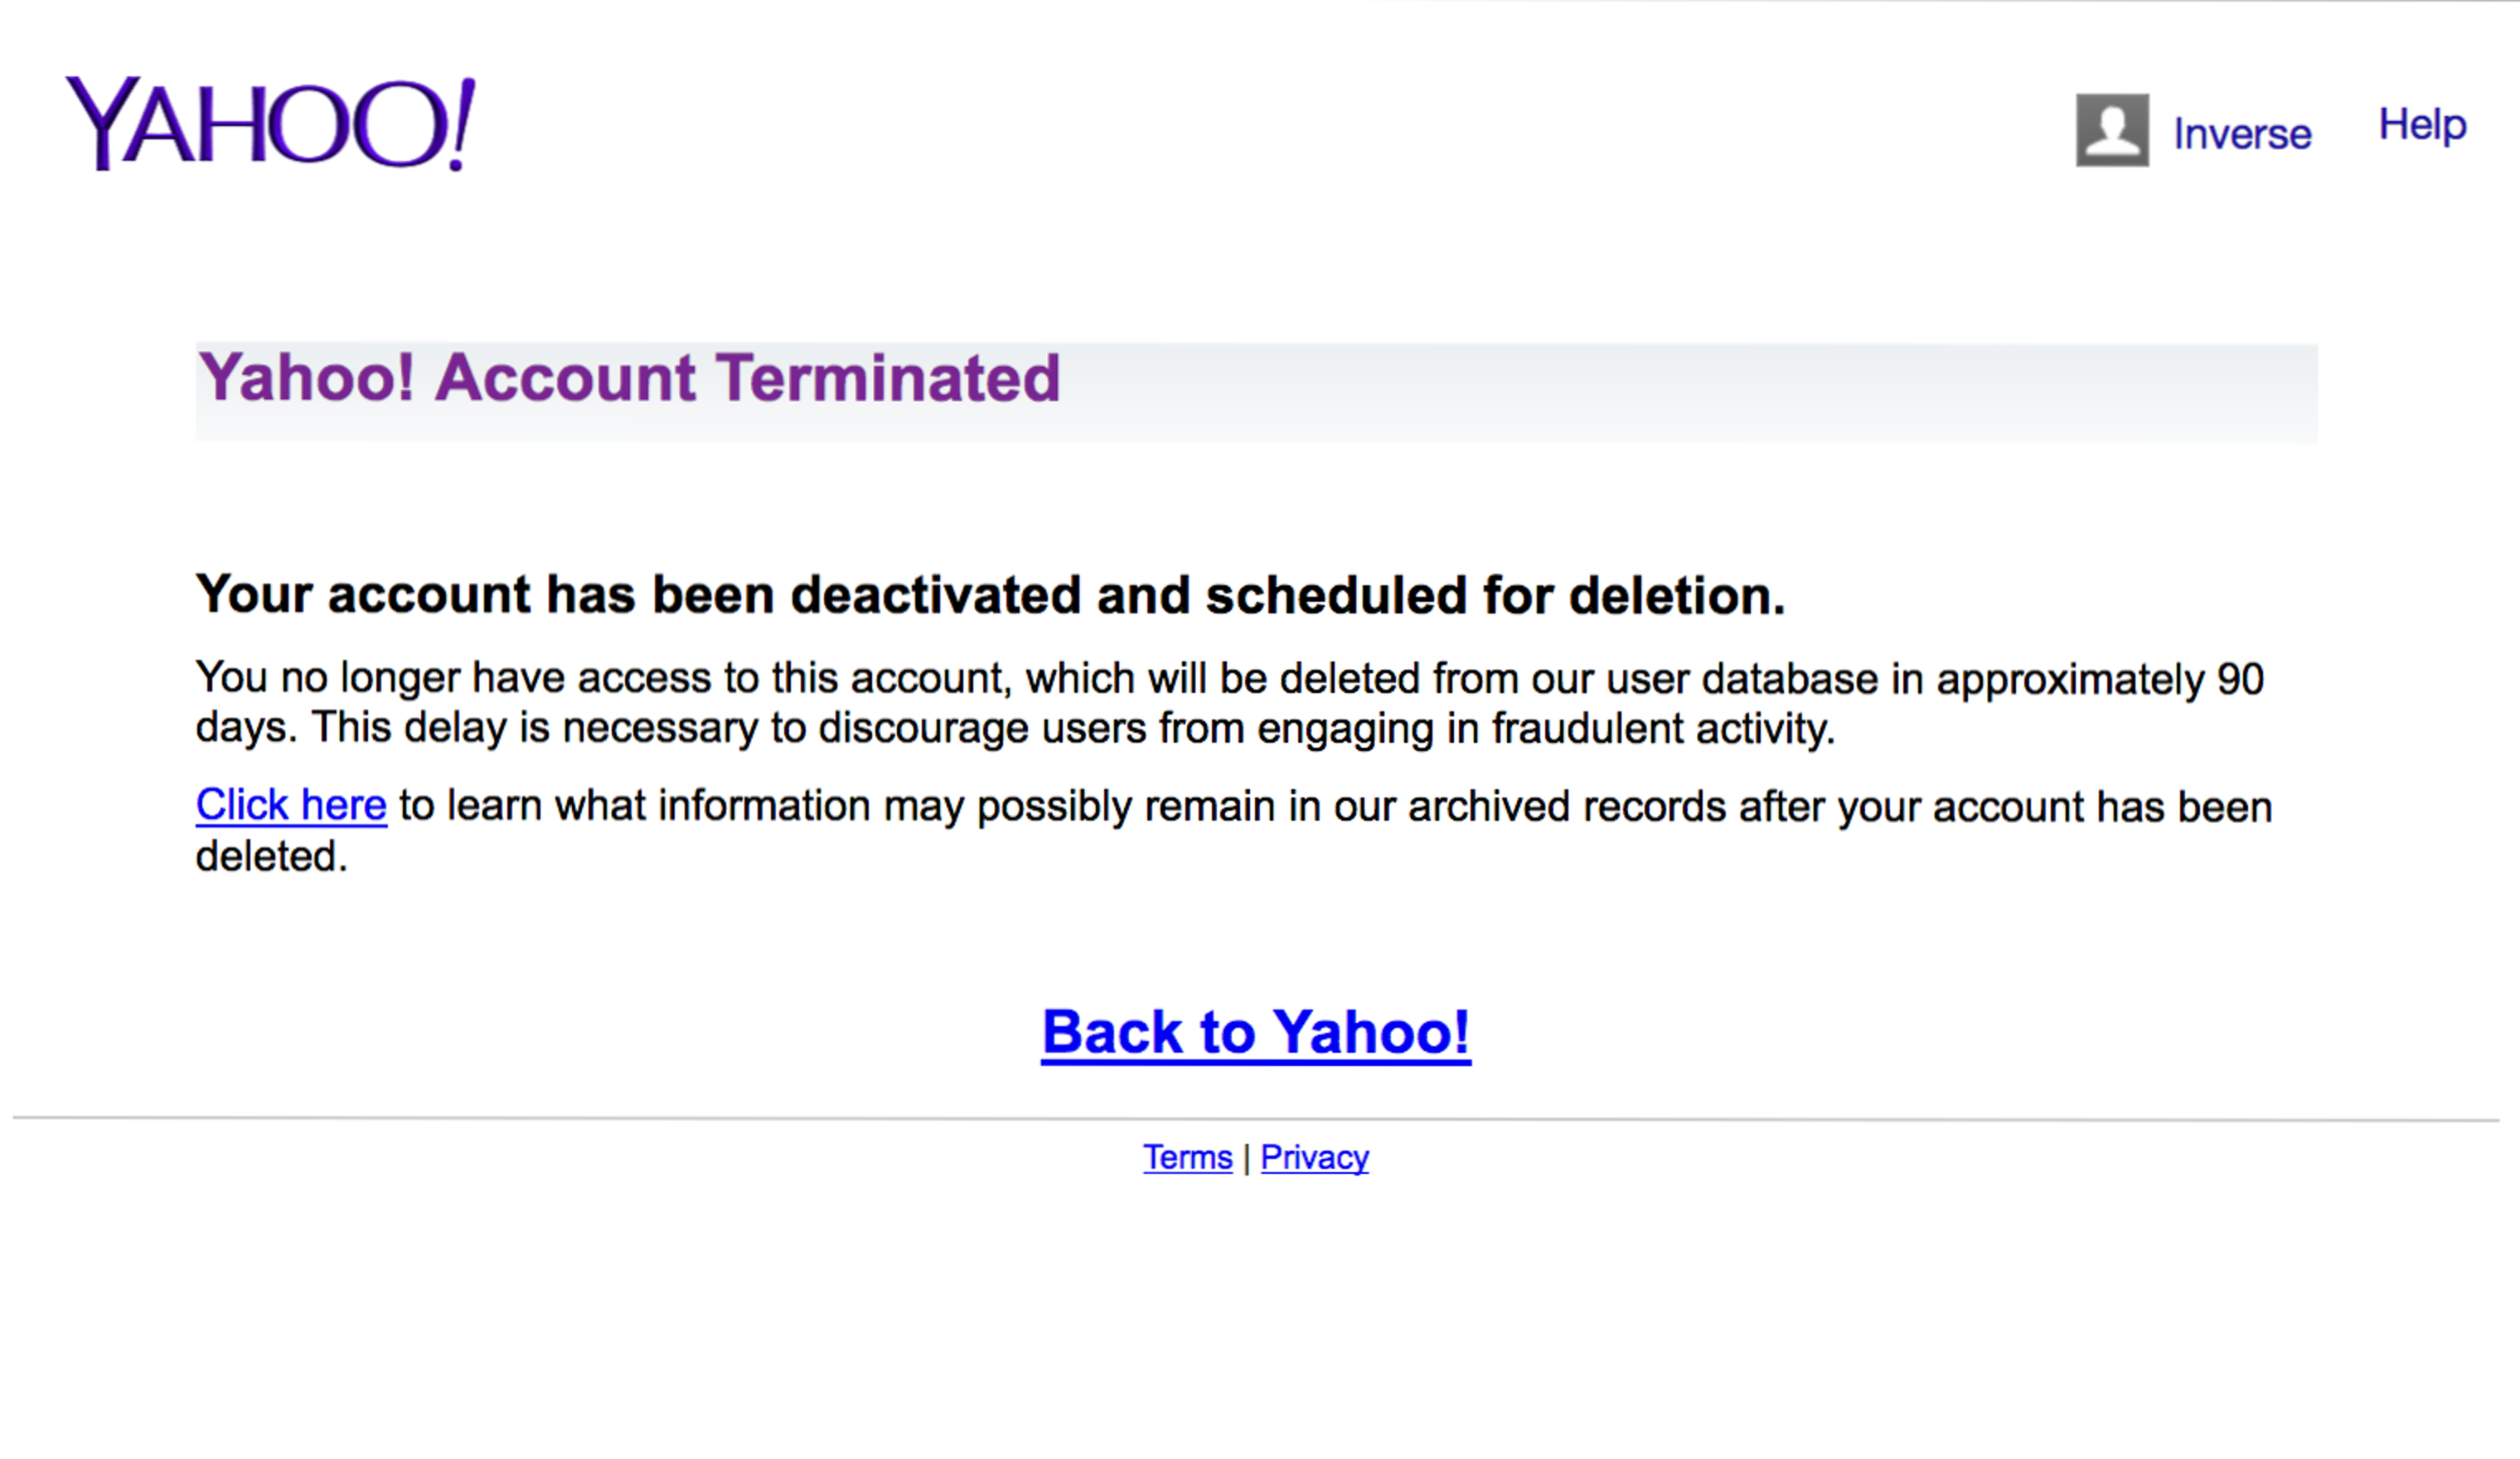 Yahoo confirms that a user's account is scheduled for deletion within 90 days.